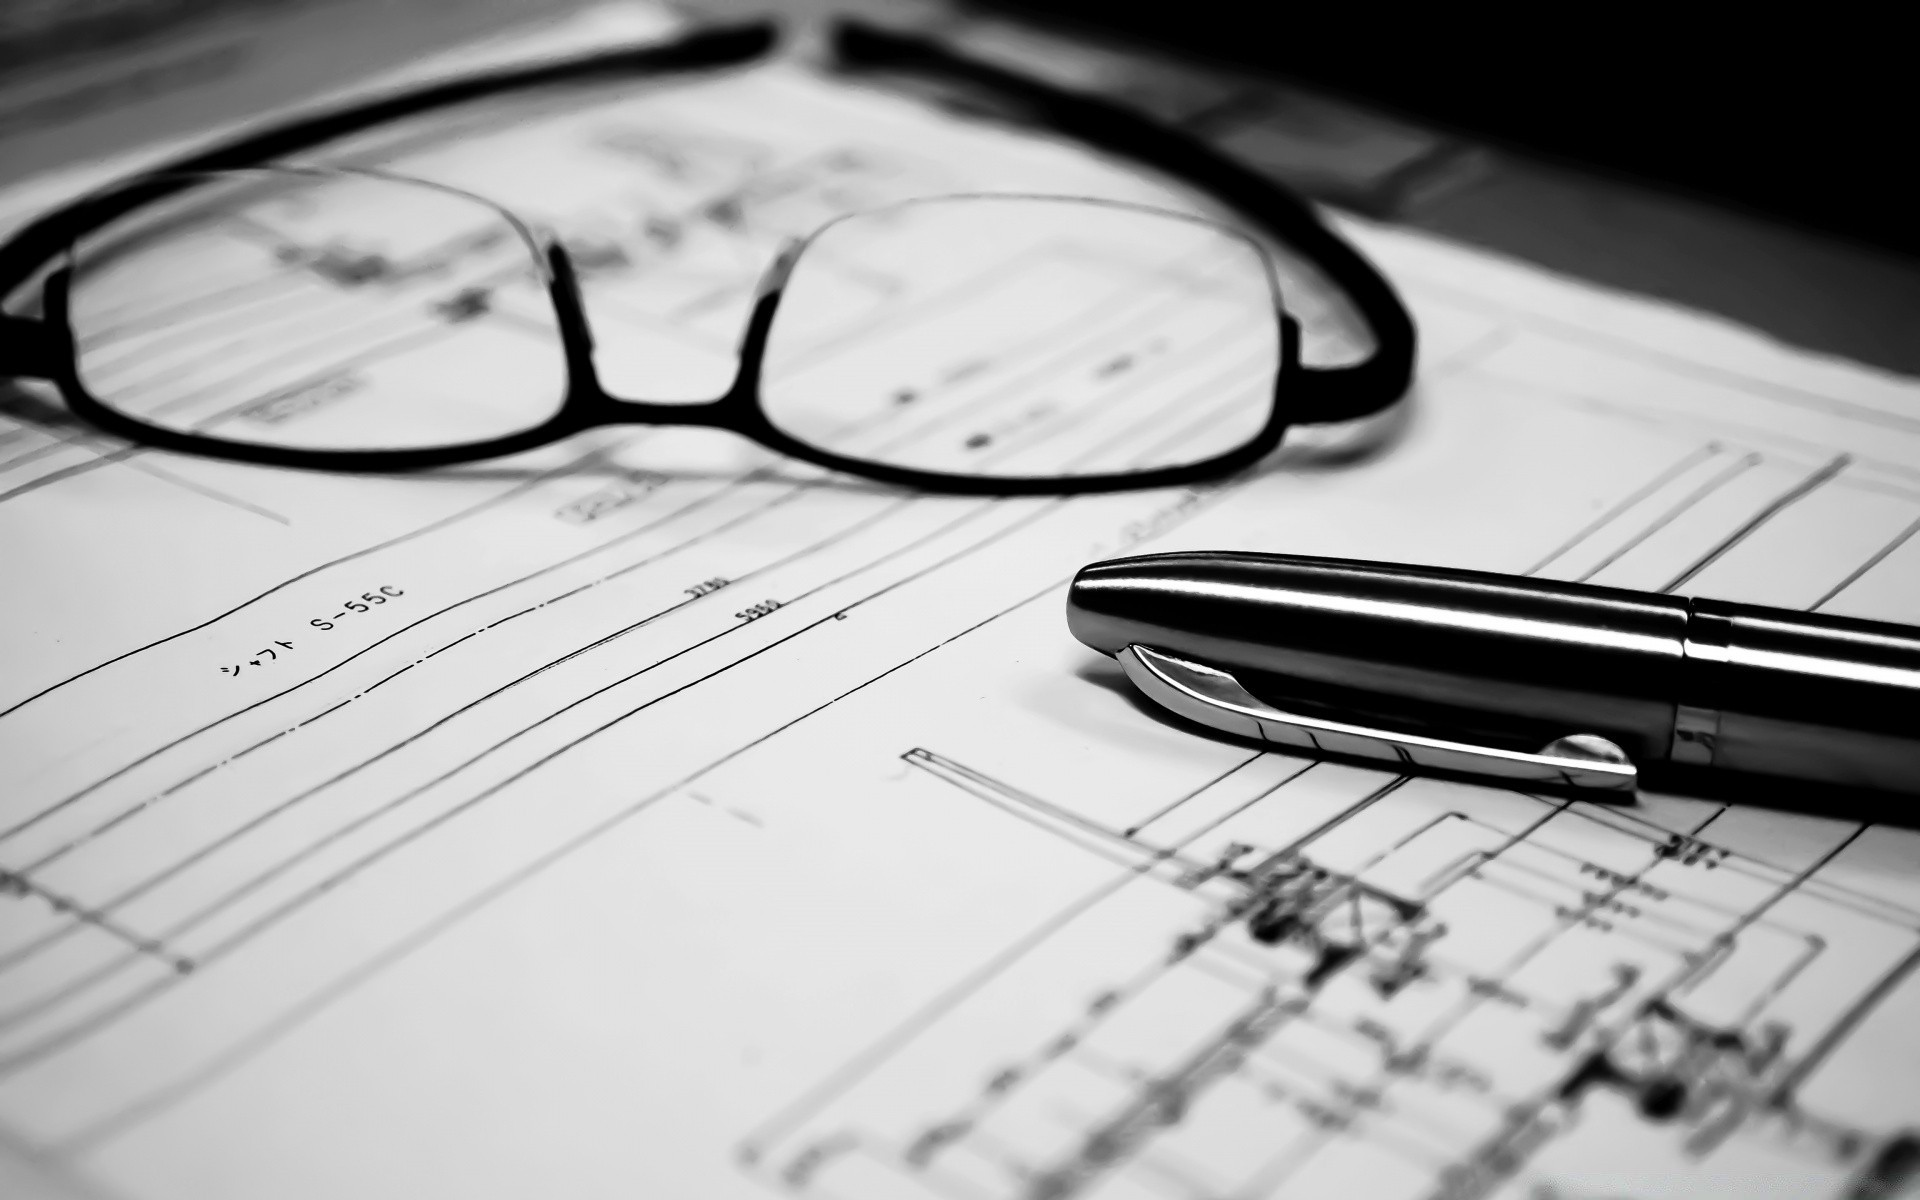 black and white composition business data paper money eyeglasses document finance financial office graph commerce diagram pencil computer preparation management research